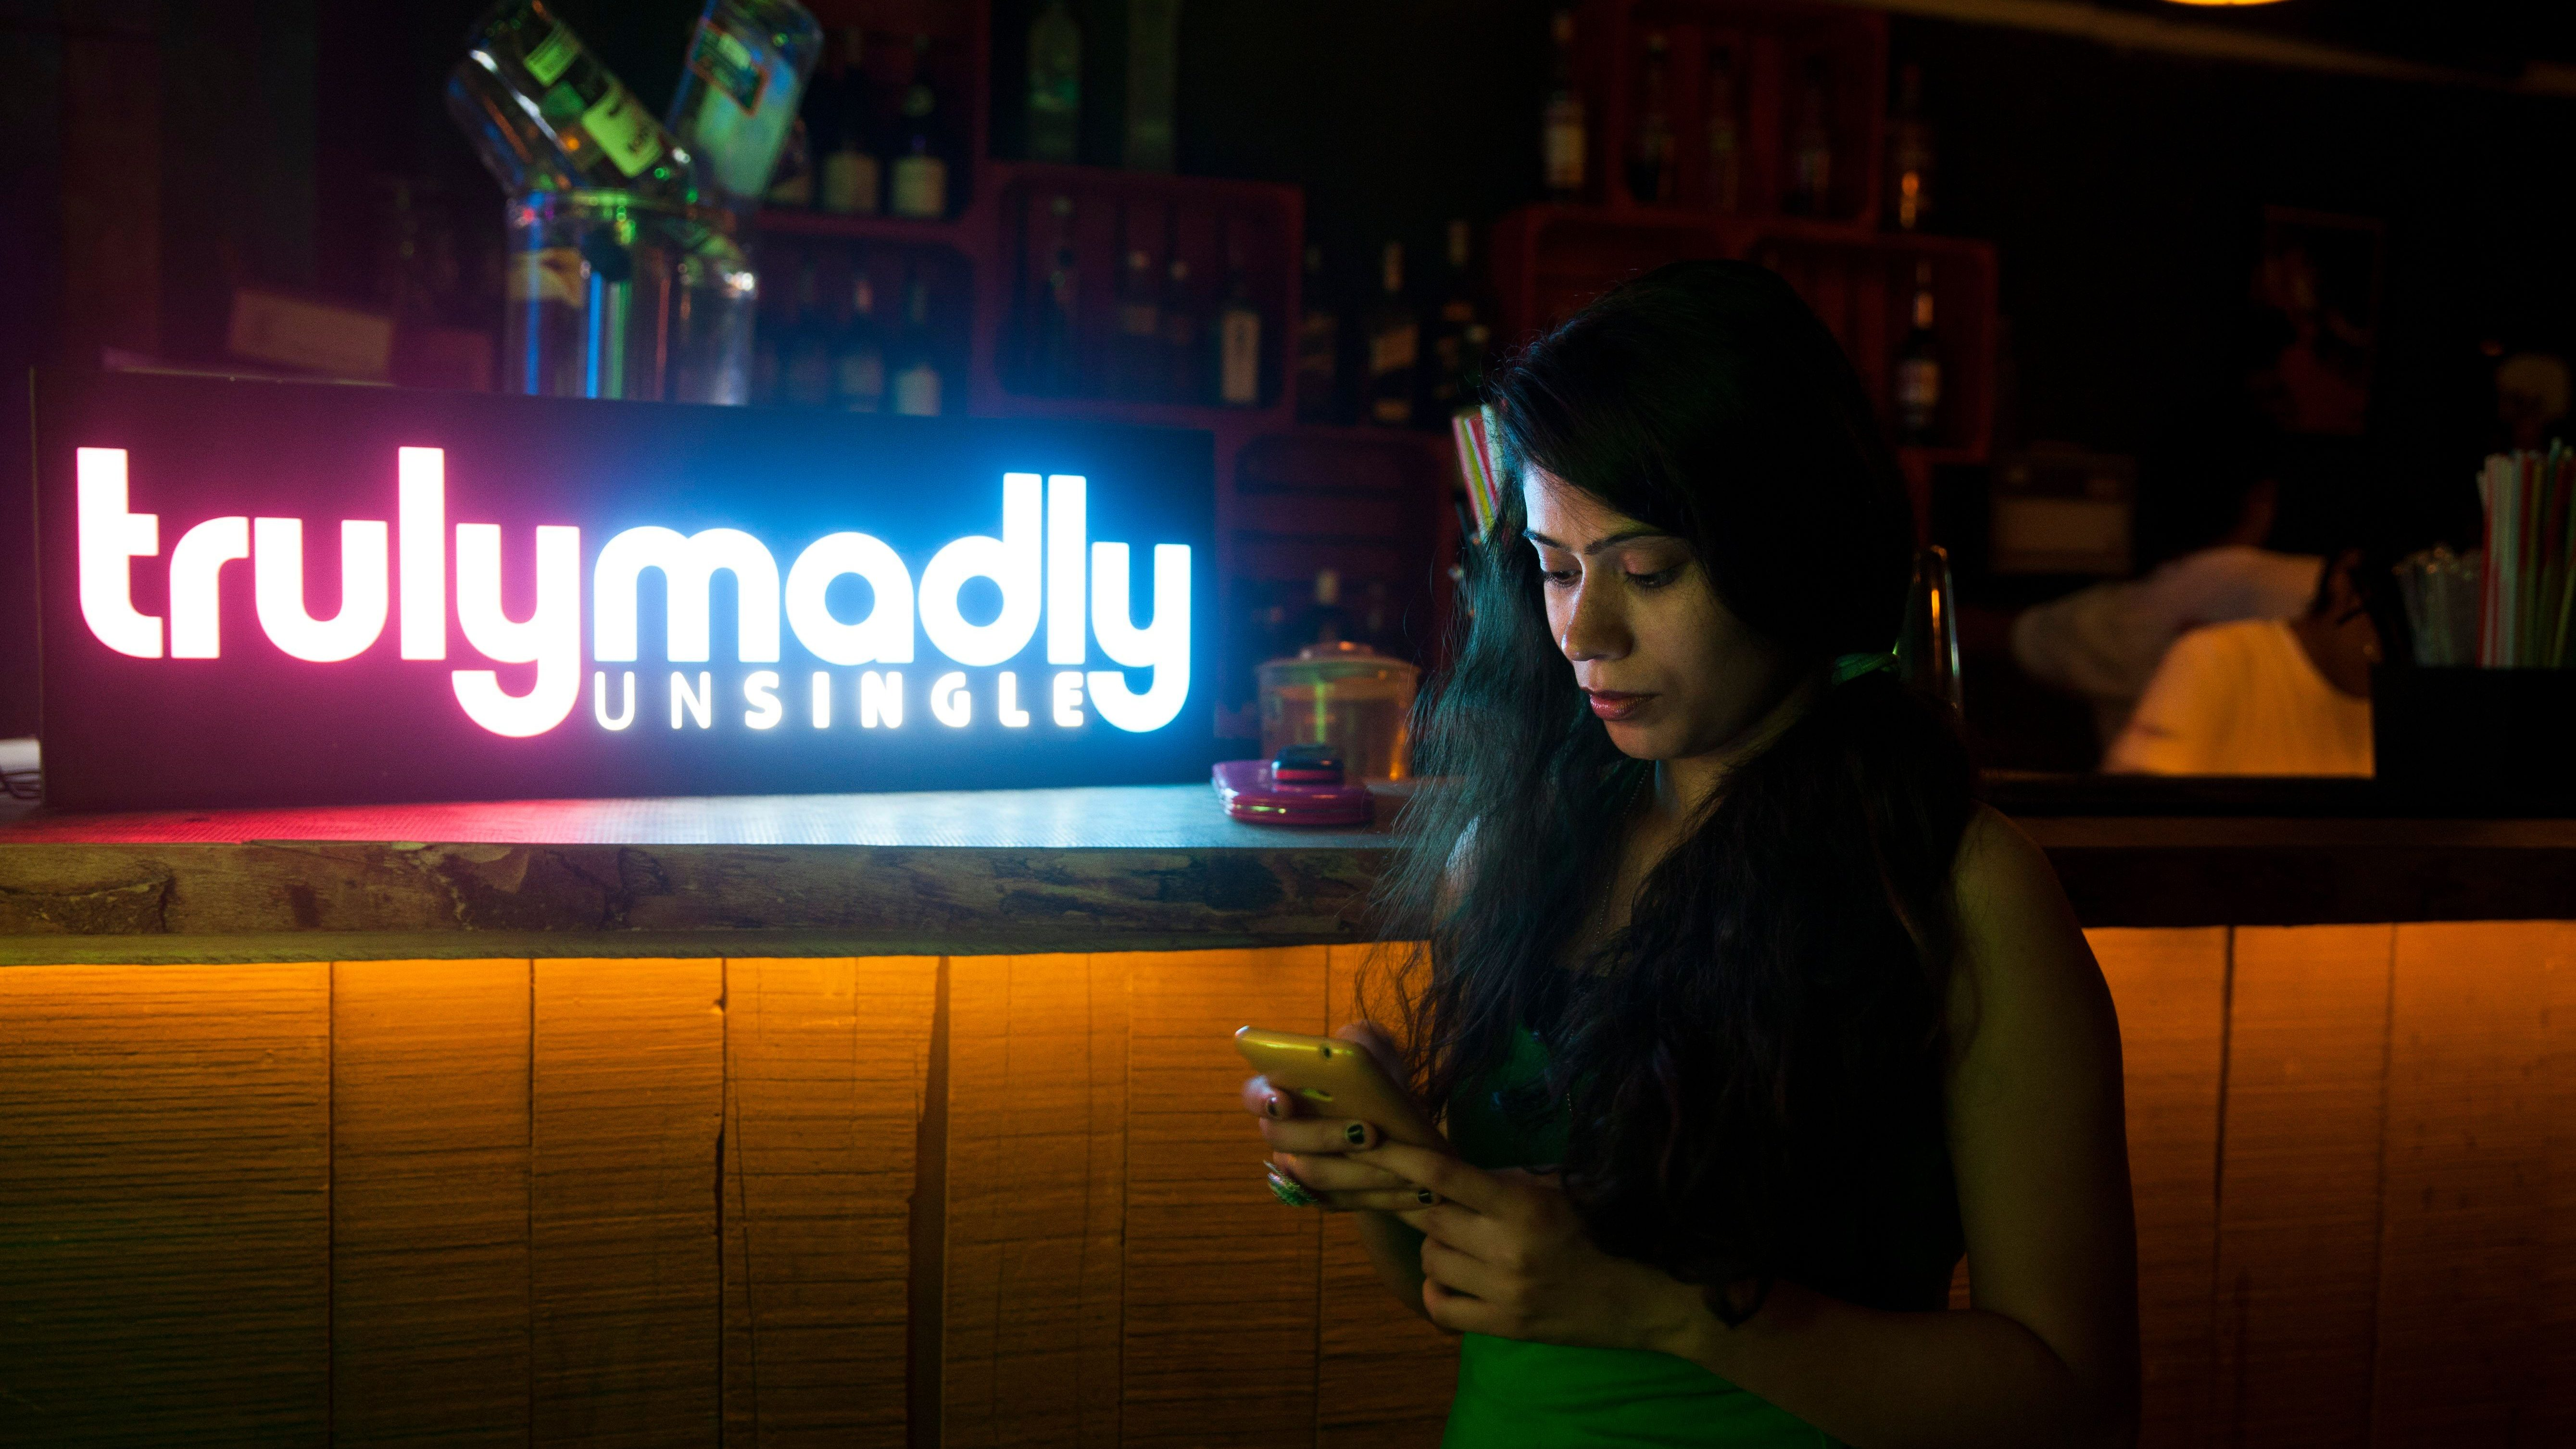 Young Indians are using dating apps for so much more than just dating